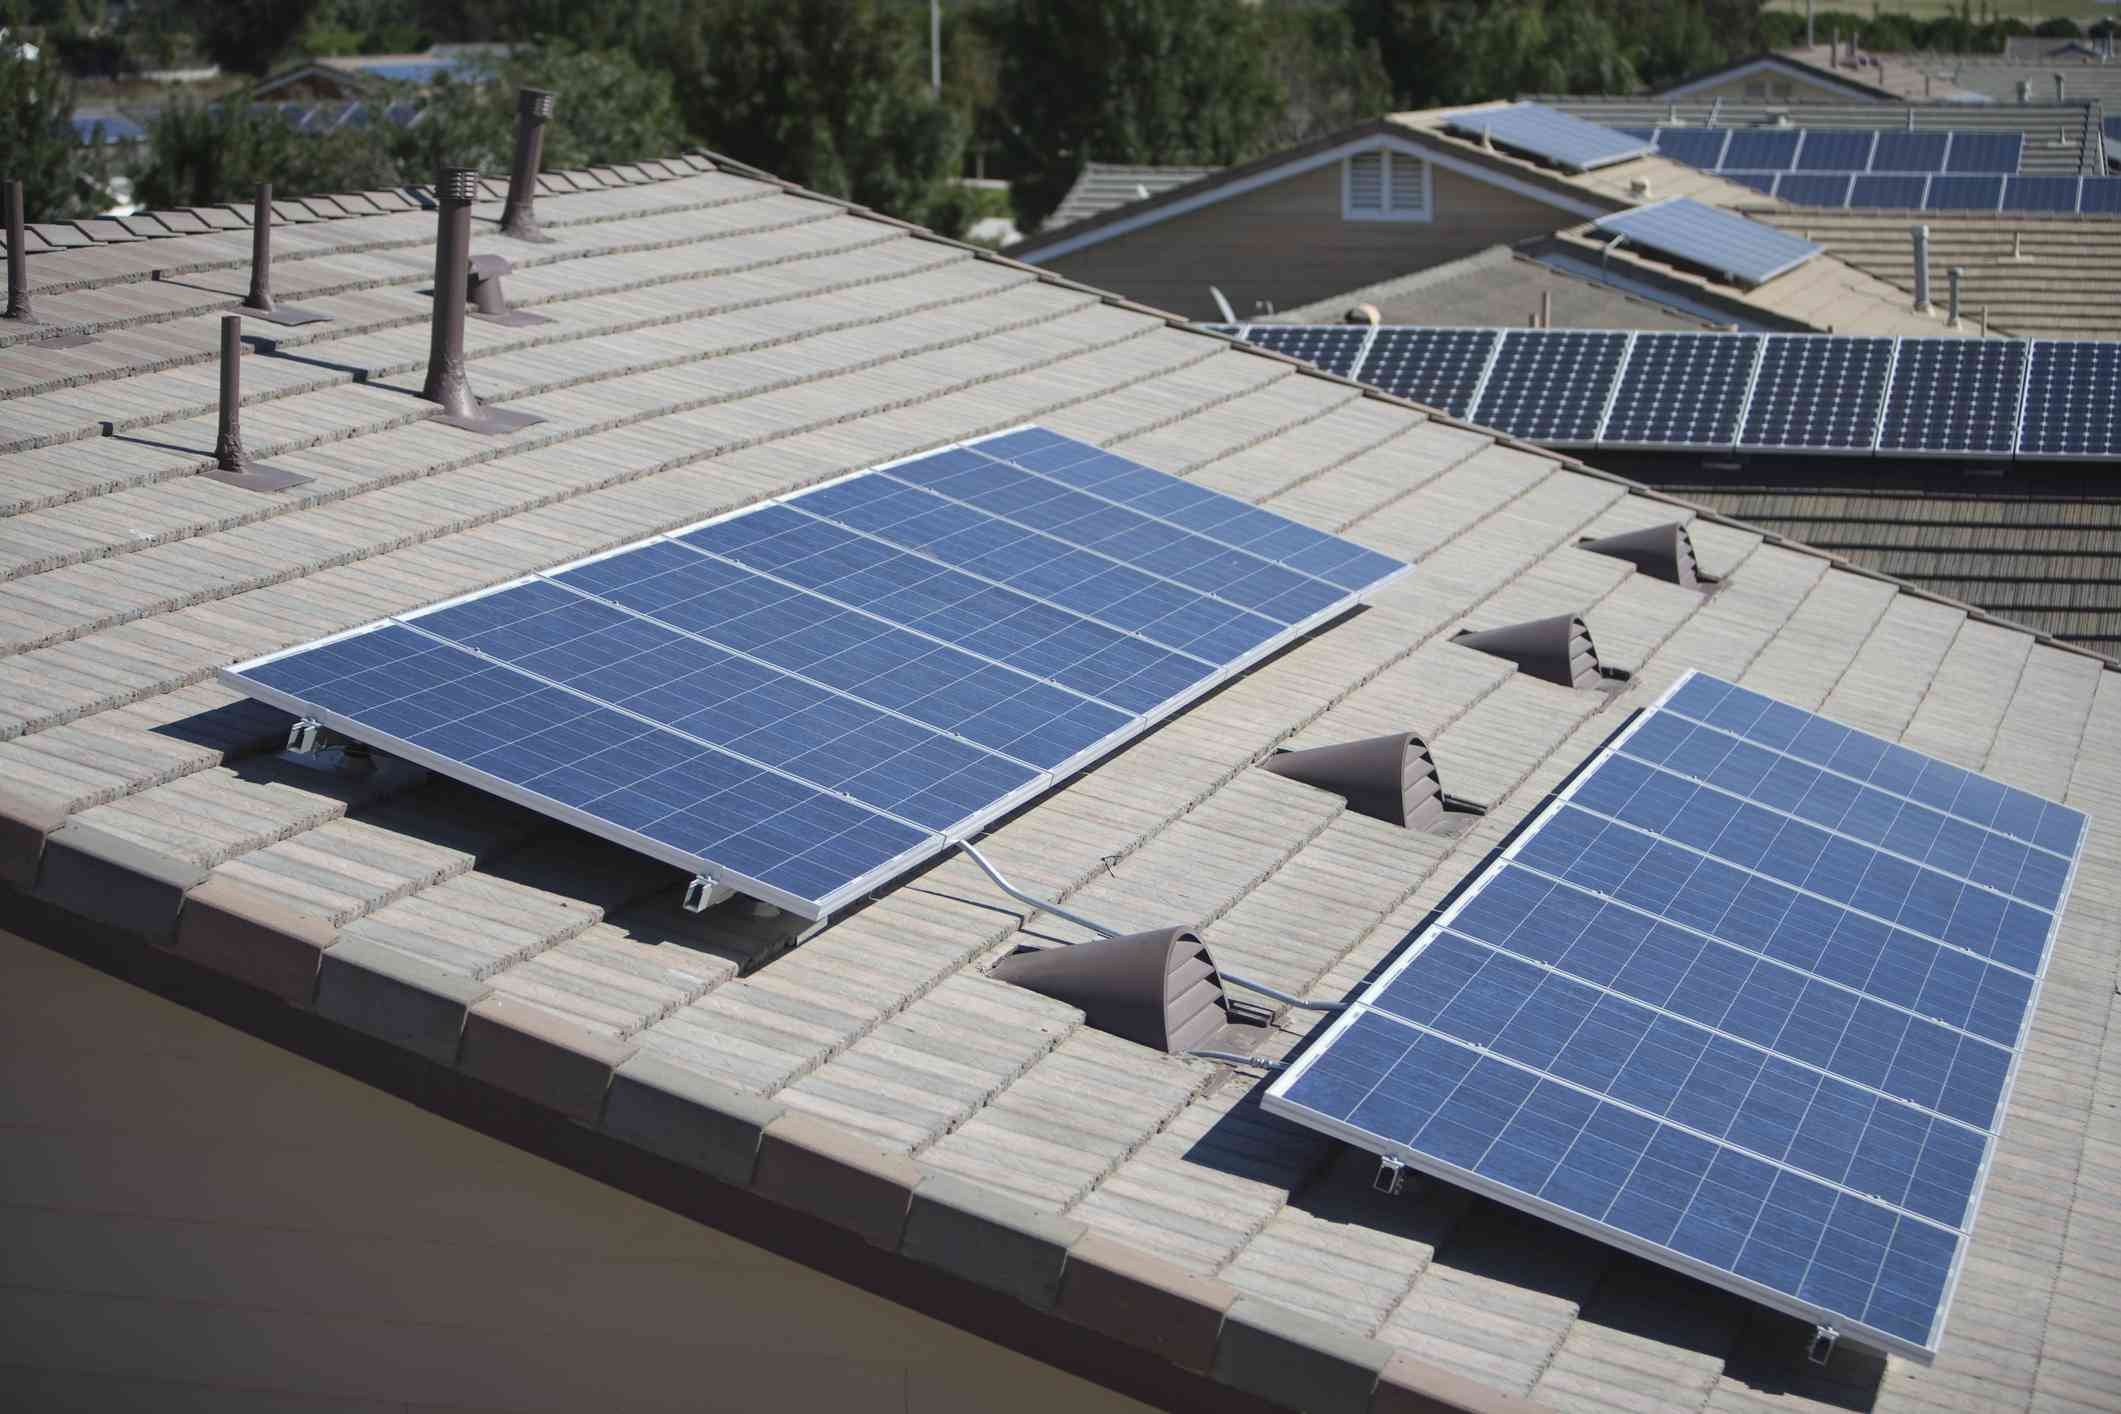 Solar panels on the roofs of various houses.